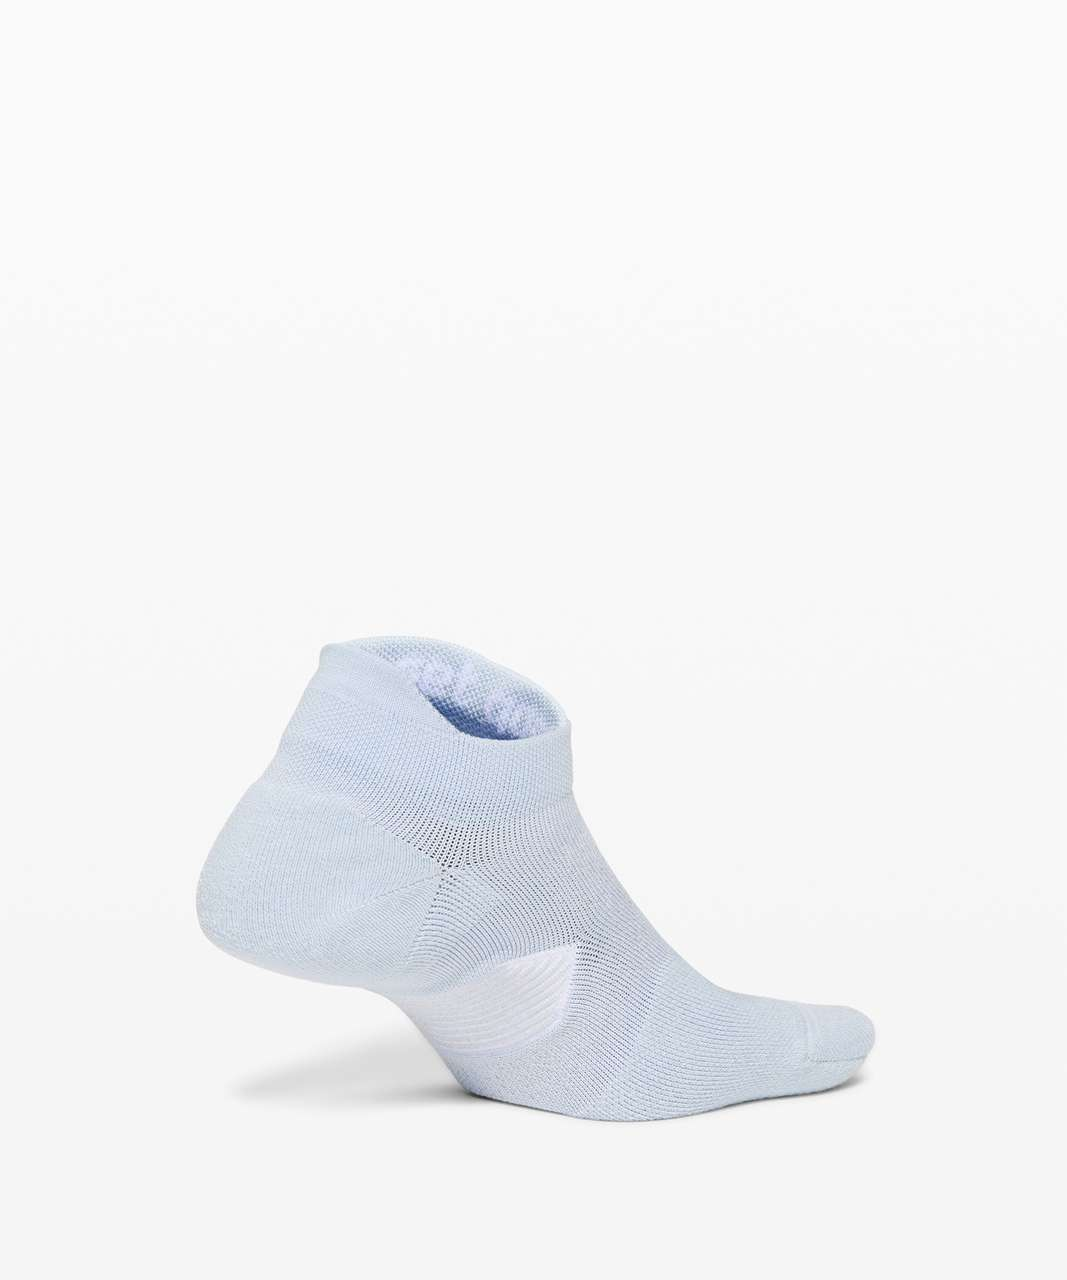 Lululemon Speed Sock *Silver - Daydream / White